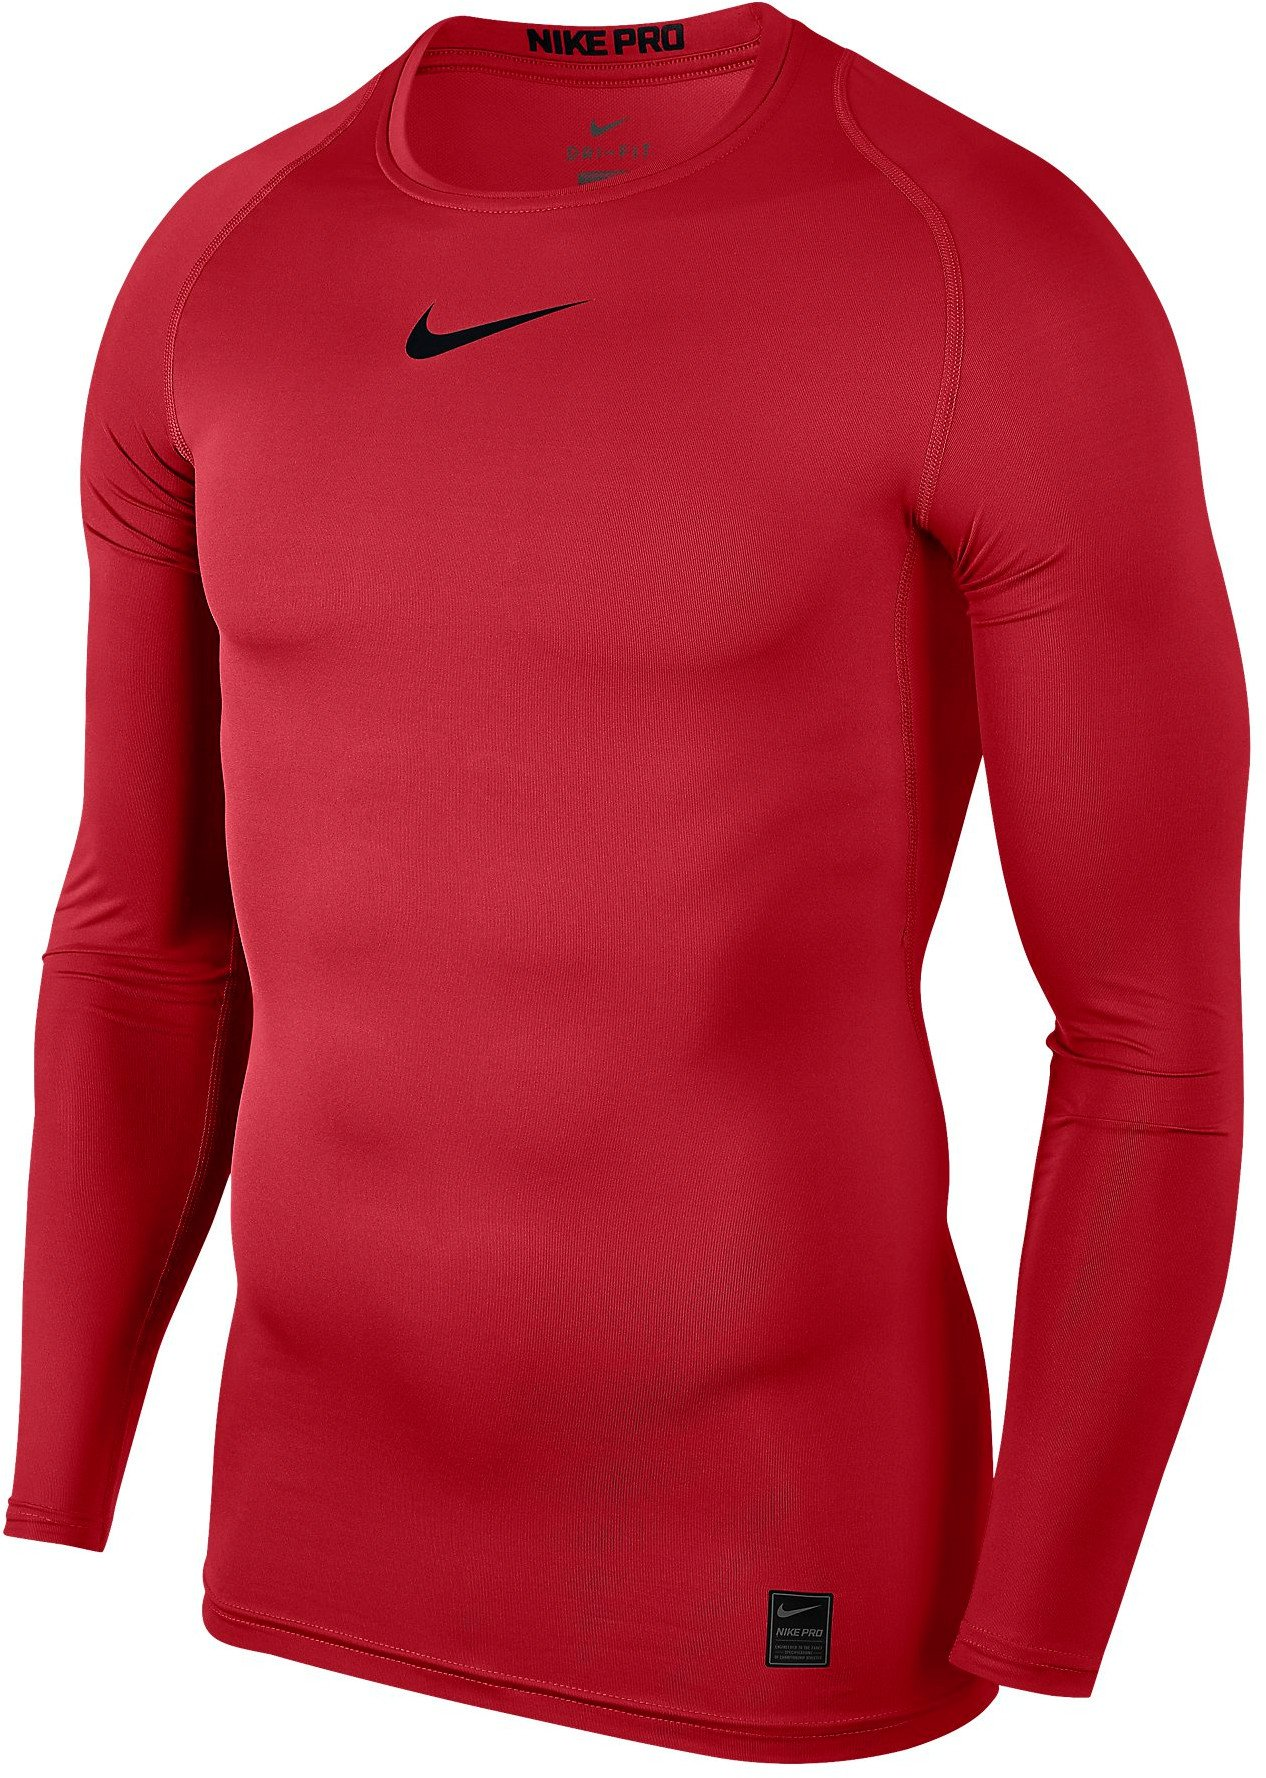 Camiseta de manga larga Nike M NP TOP LS COMP